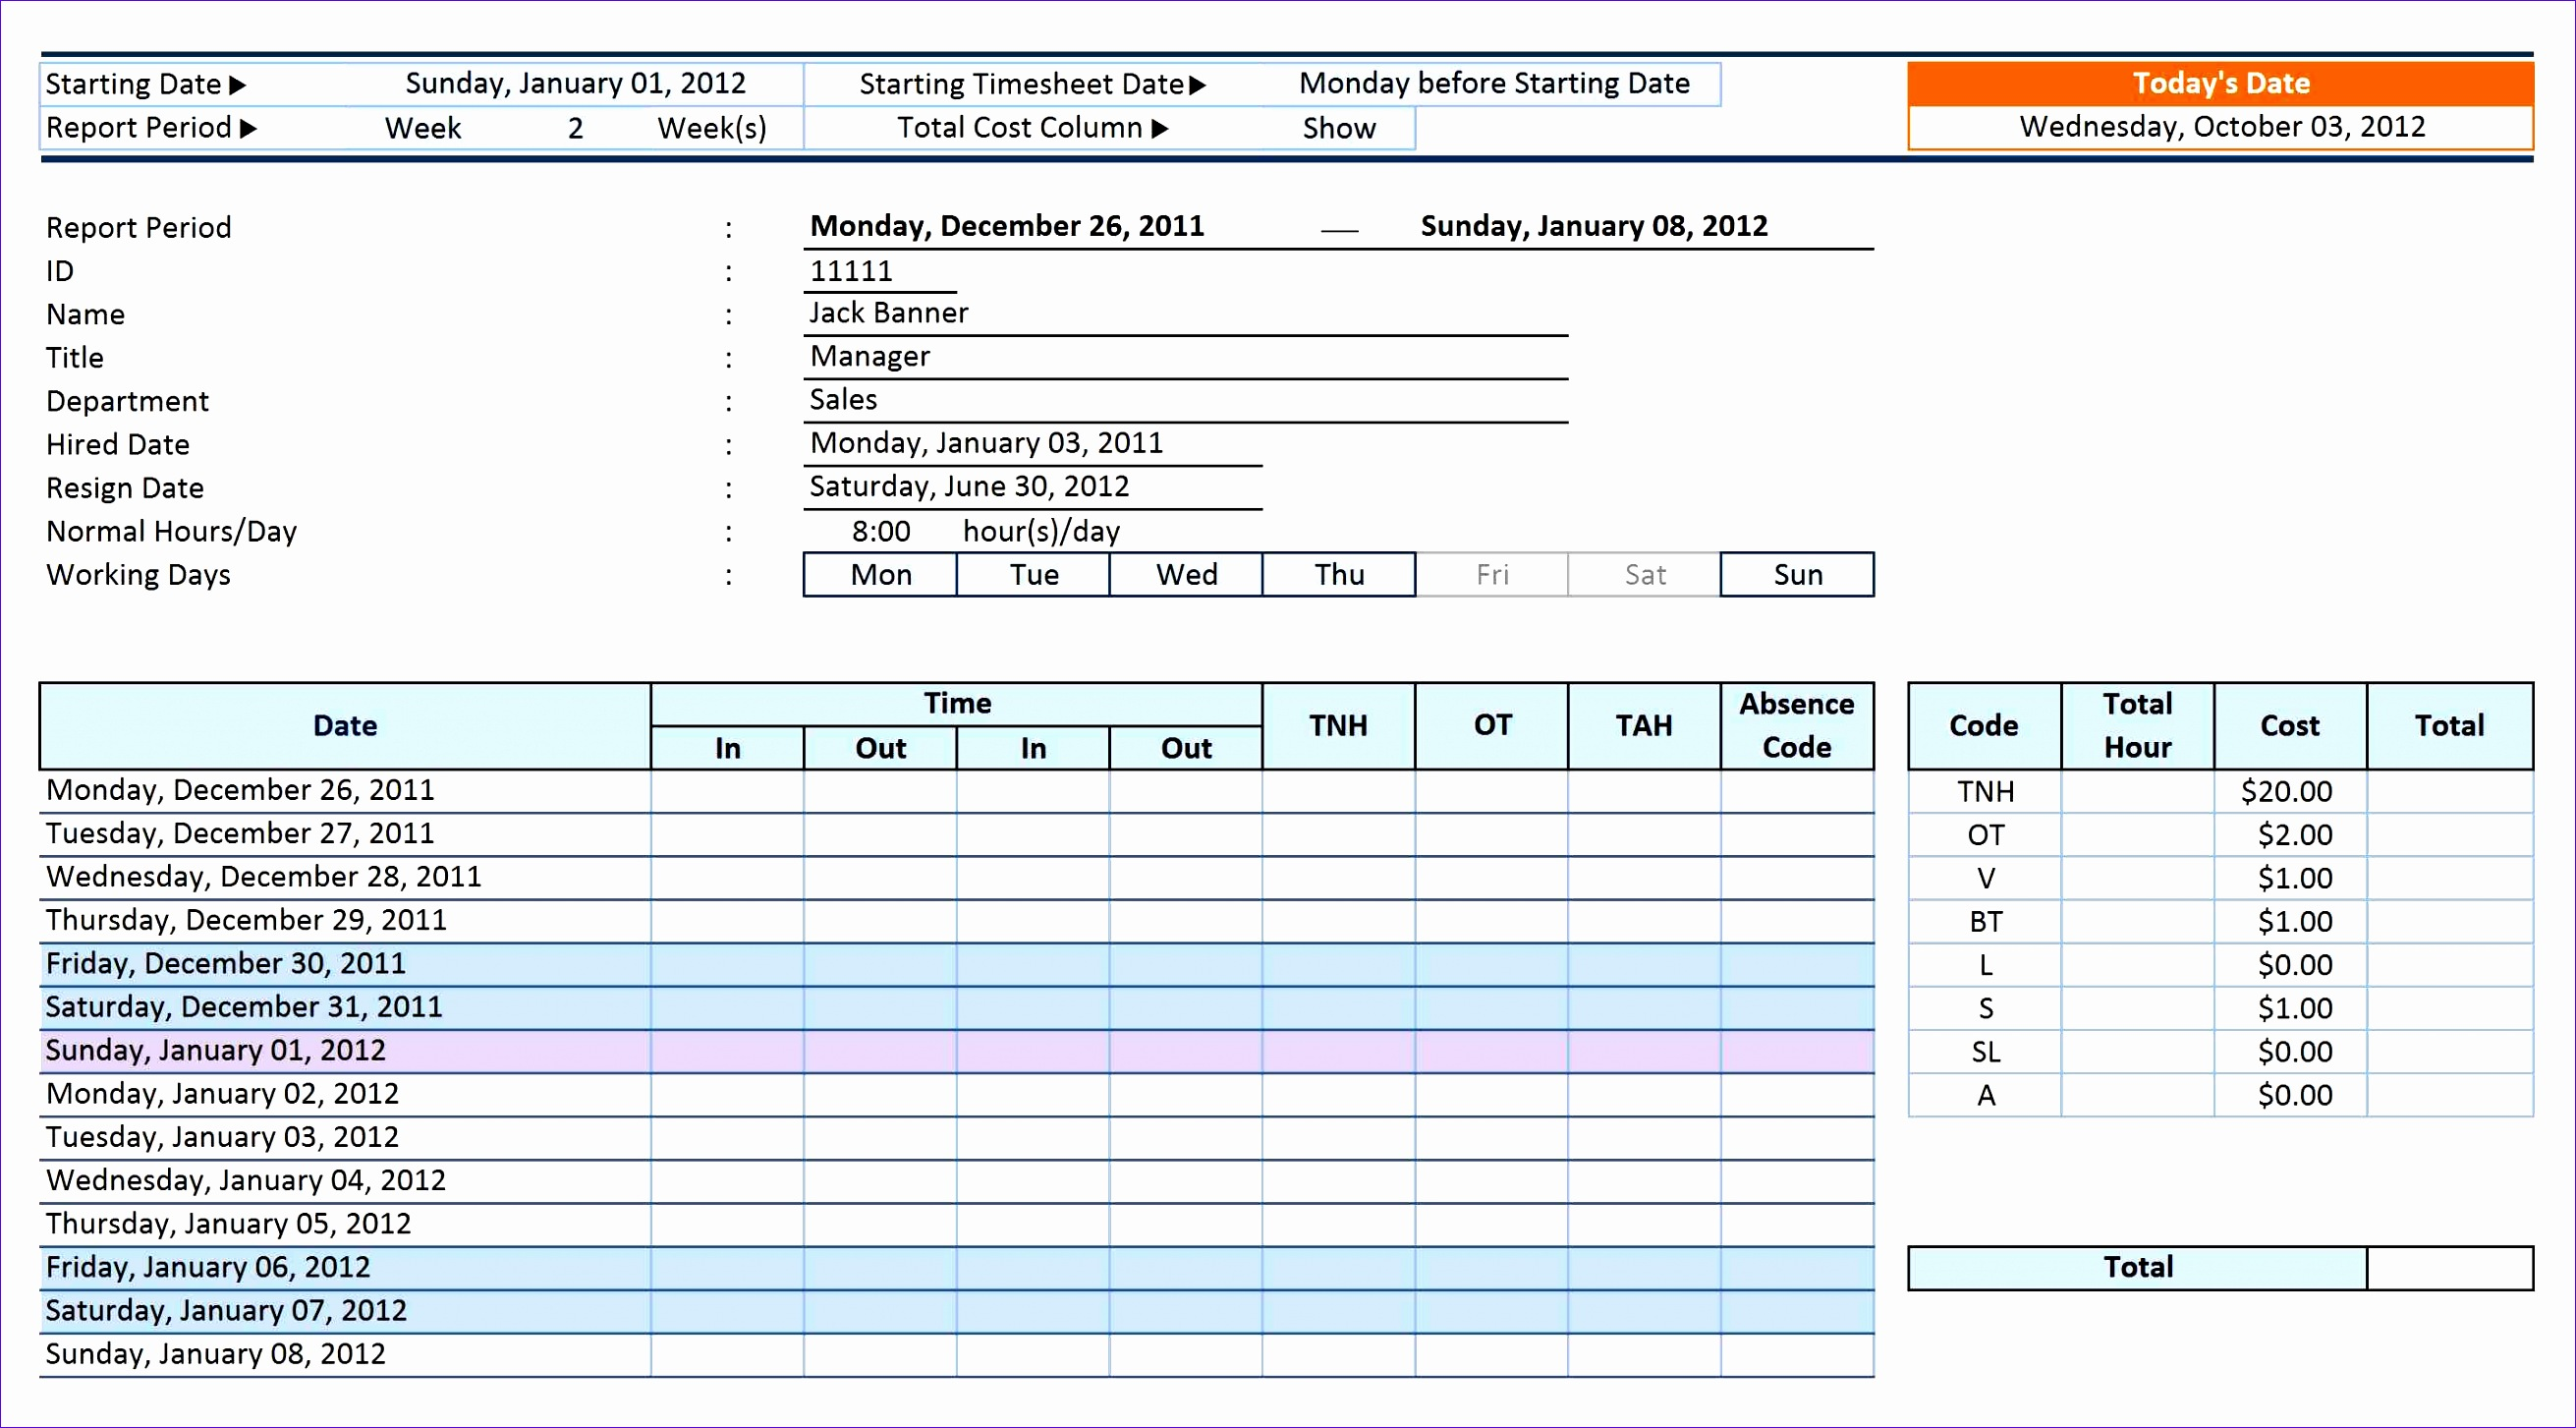 proposal tracking spreadsheet 26221453